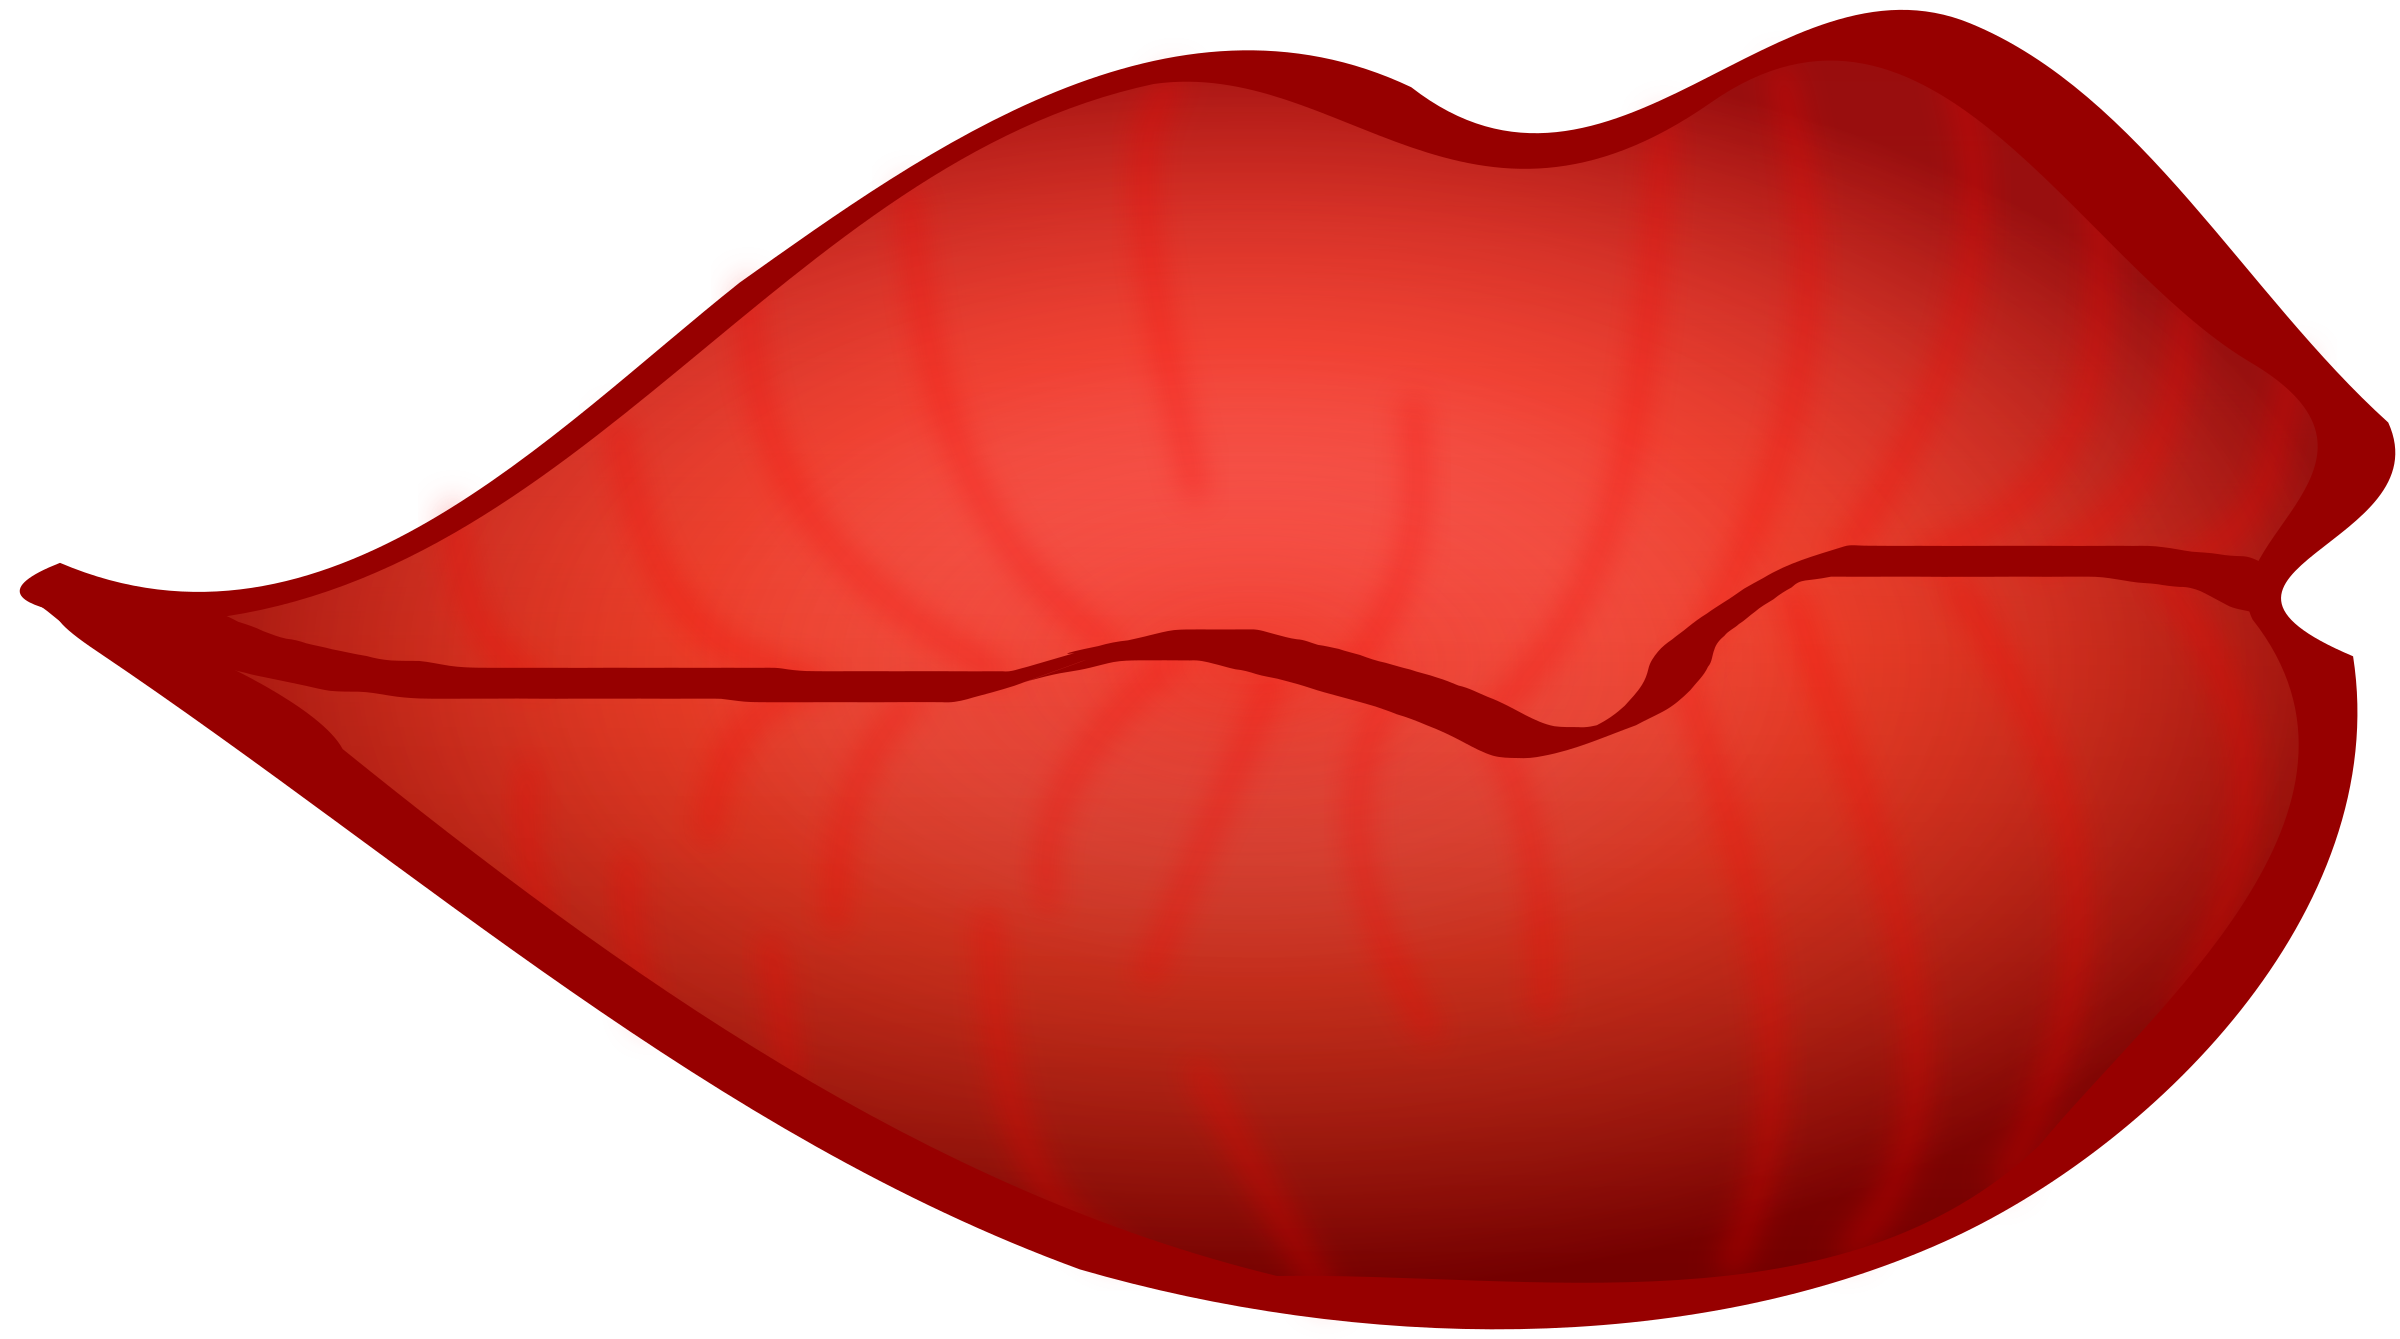 Red lips png. Kissing clipart at getdrawings